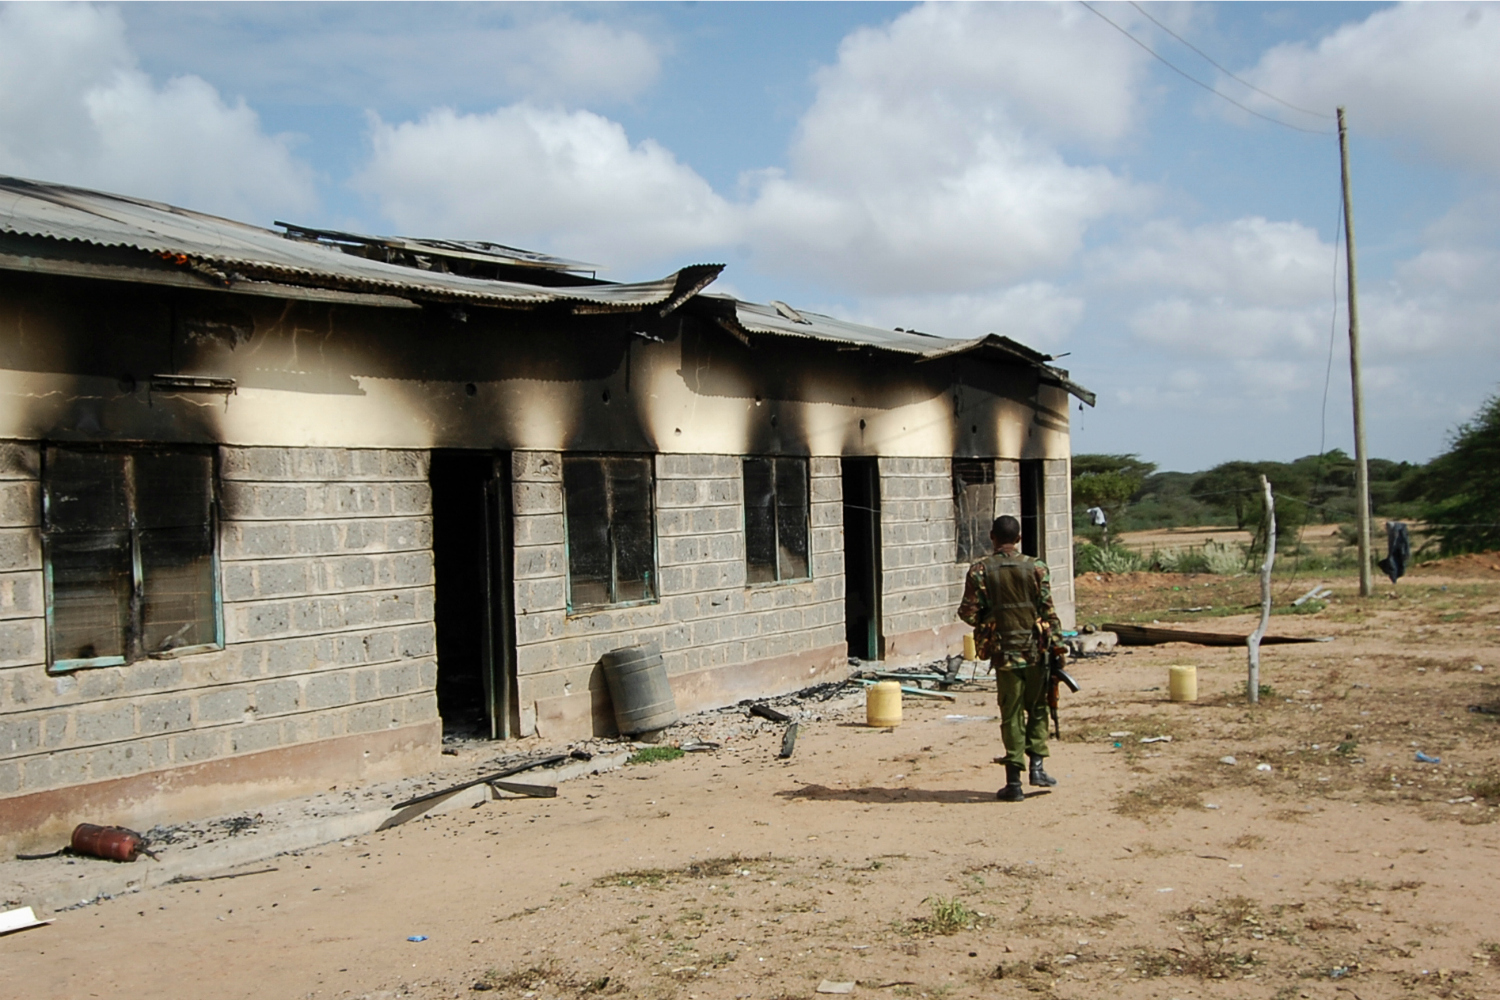 A member of Kenya's security forces.